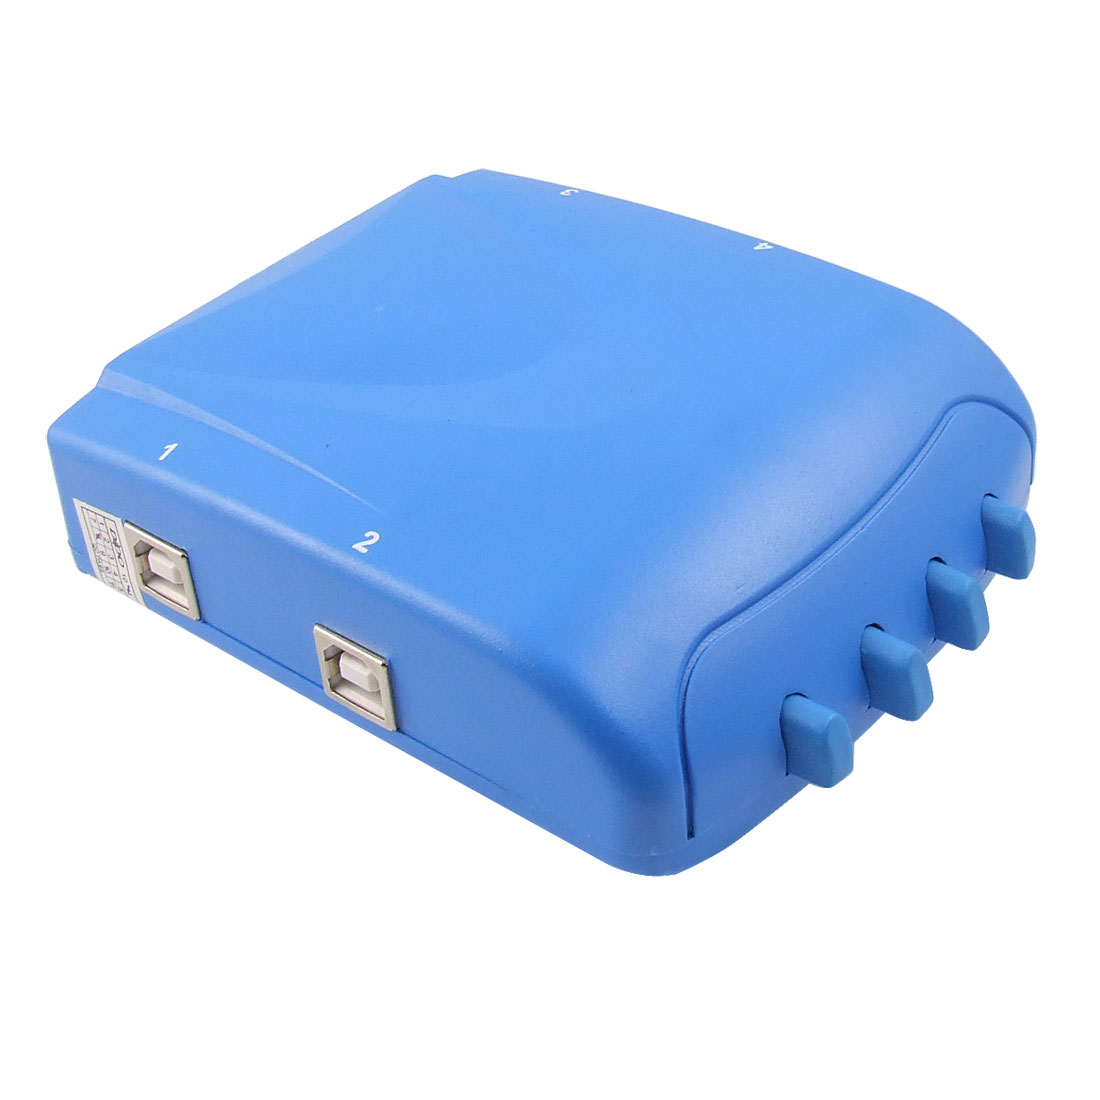 4 Ports USB B Type Input to USB A Output Sharing Switch Hub